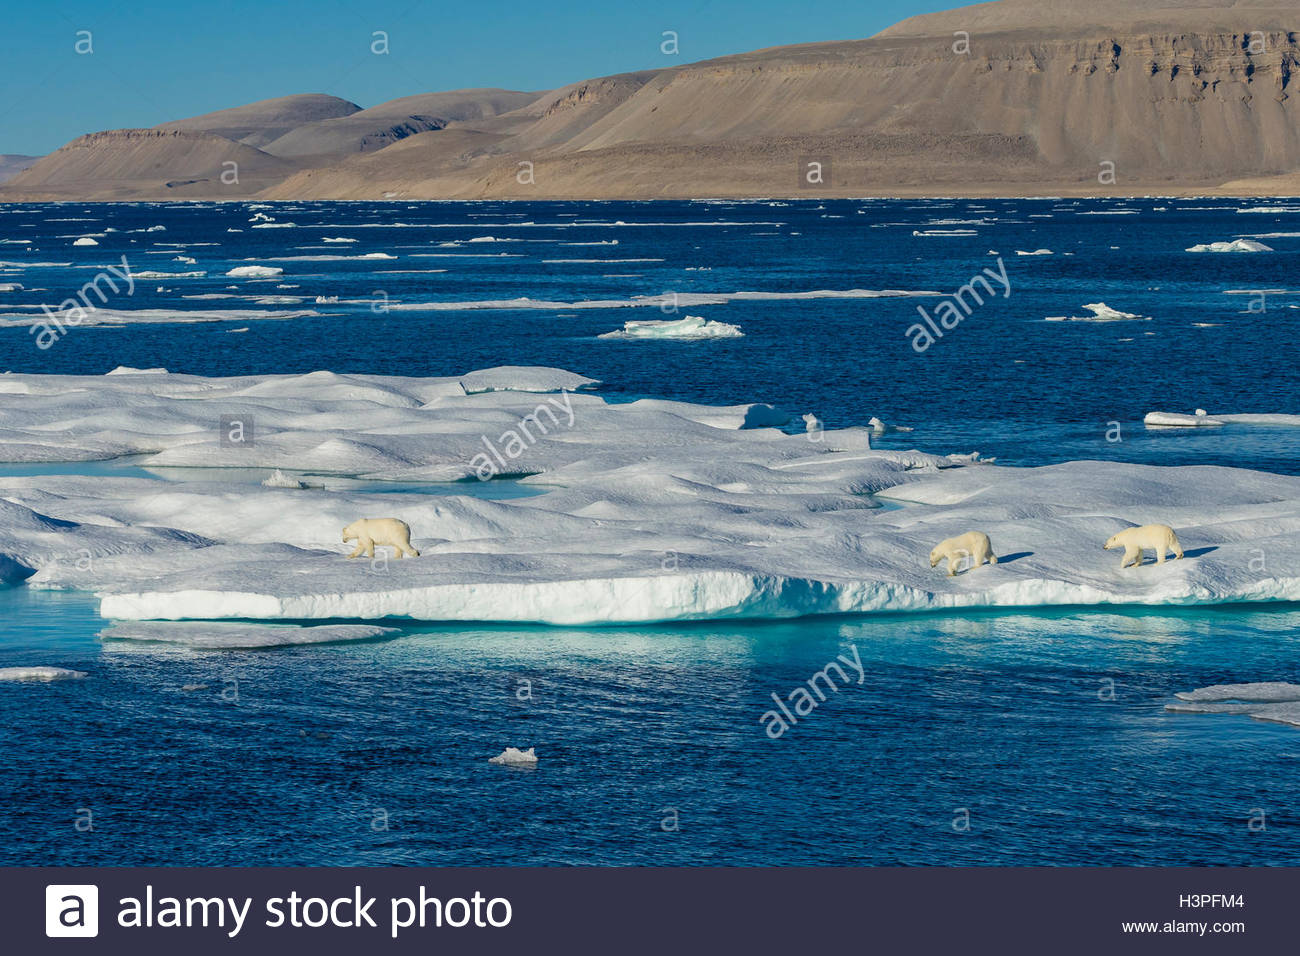 Mother and cubs, polar bears (Ursus maritimus) wandering across the ice floes in the Canadian Arctic. Stock Photo